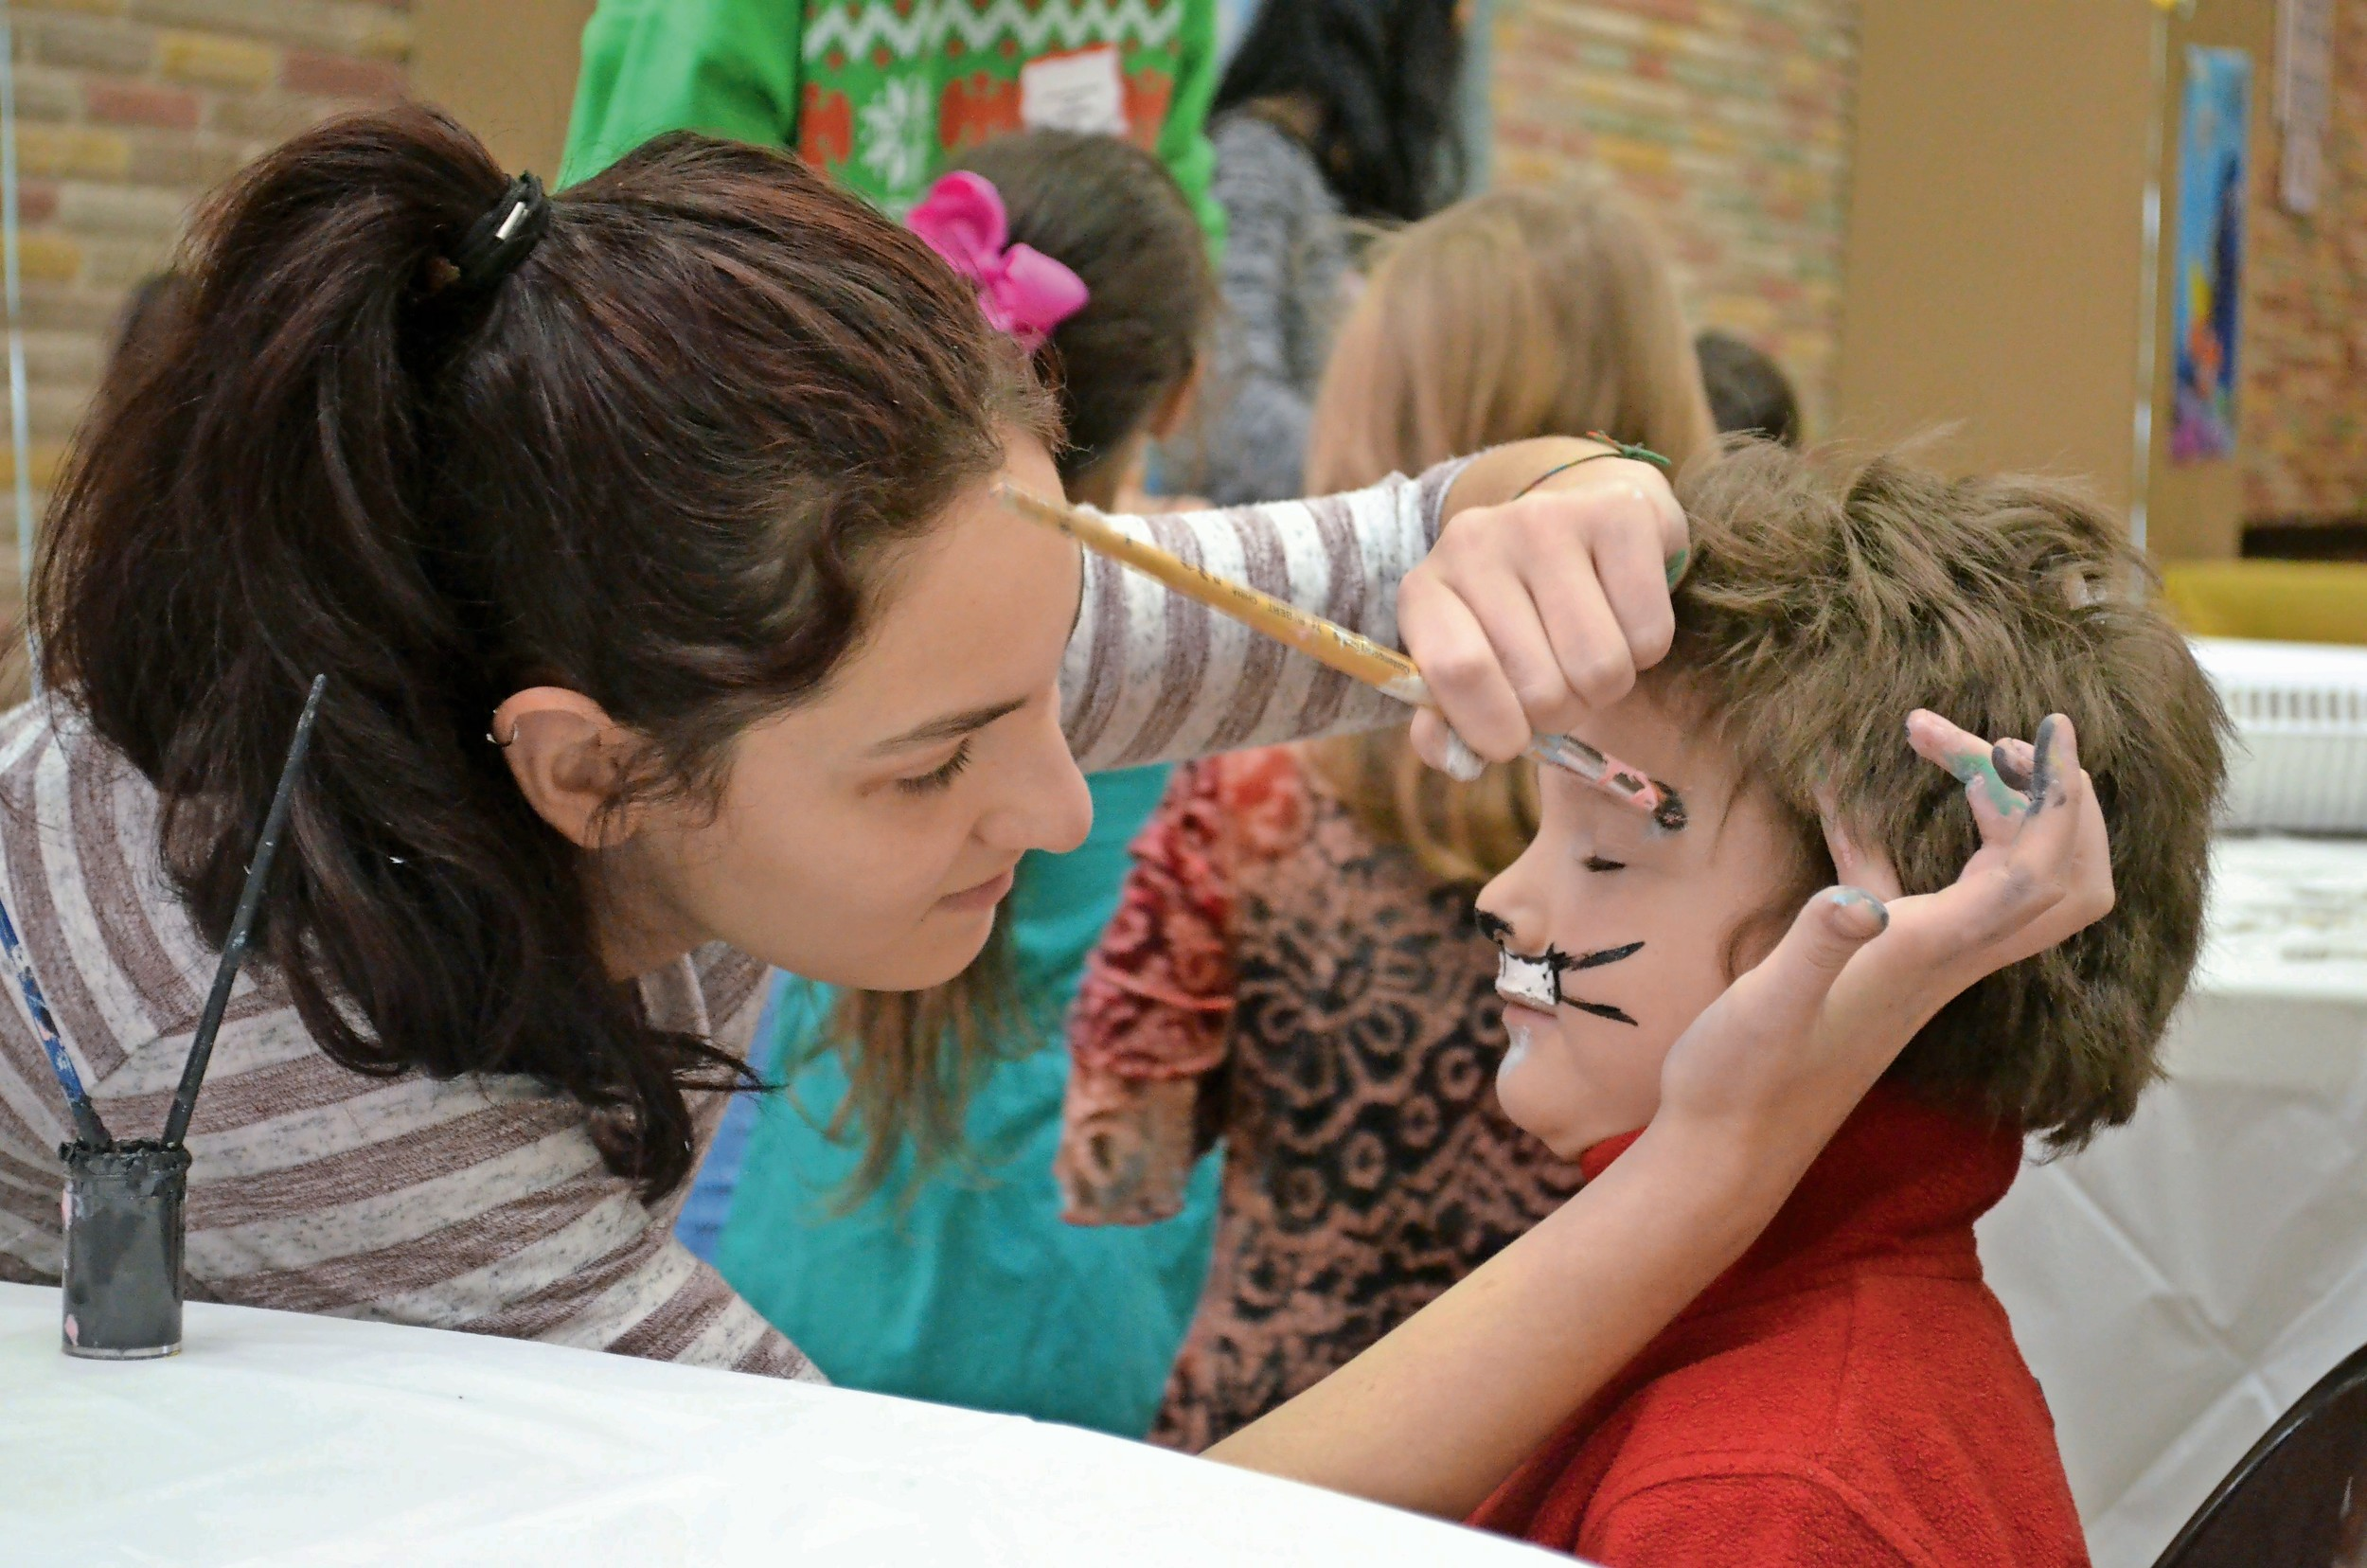 Efe Koc, 4, had his face painted as a tiger for the celebration.